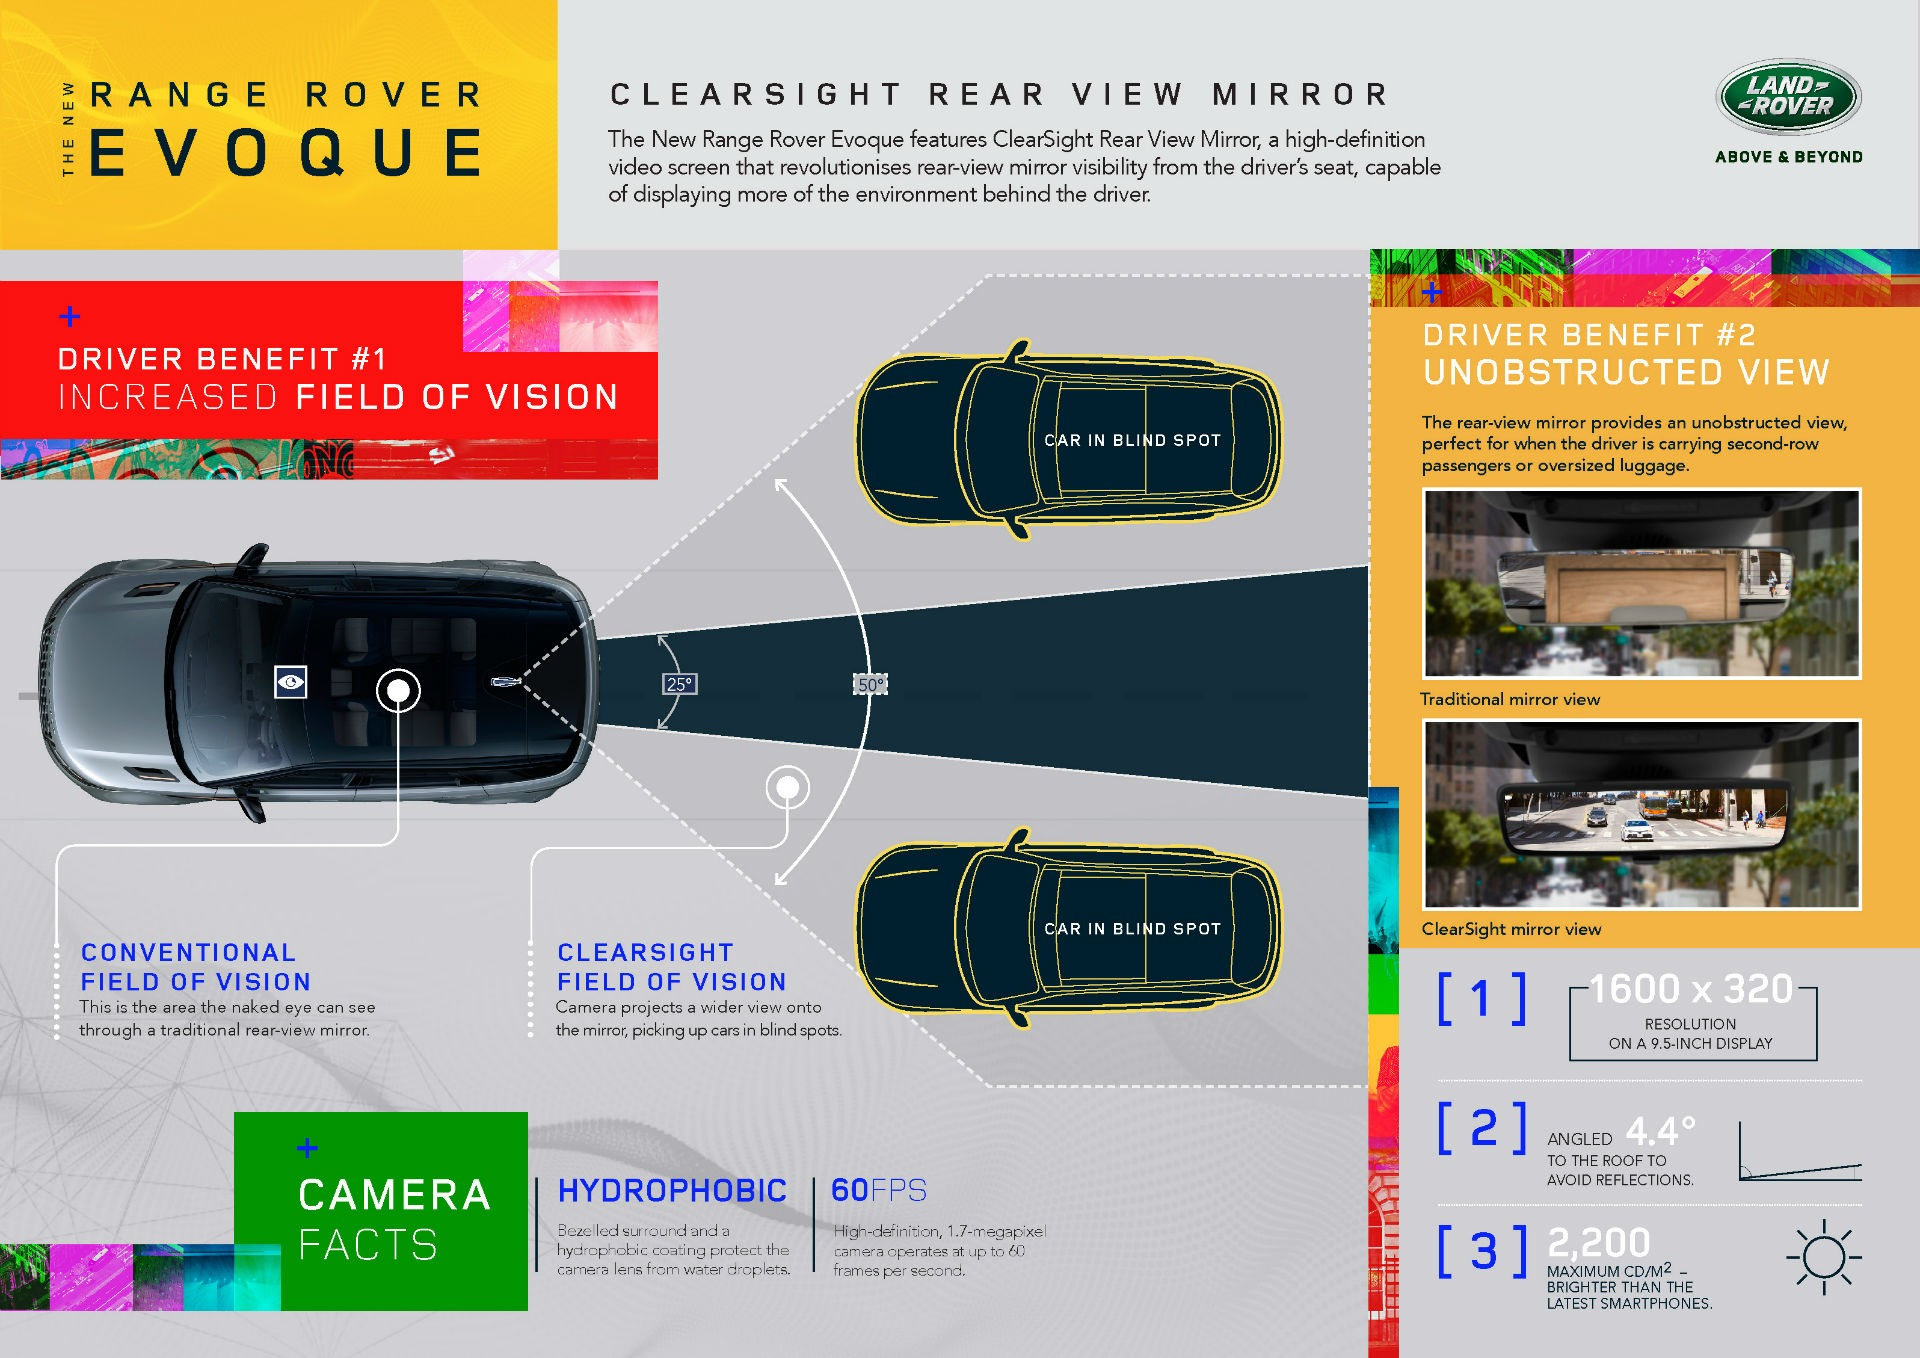 ClearSight Ground View